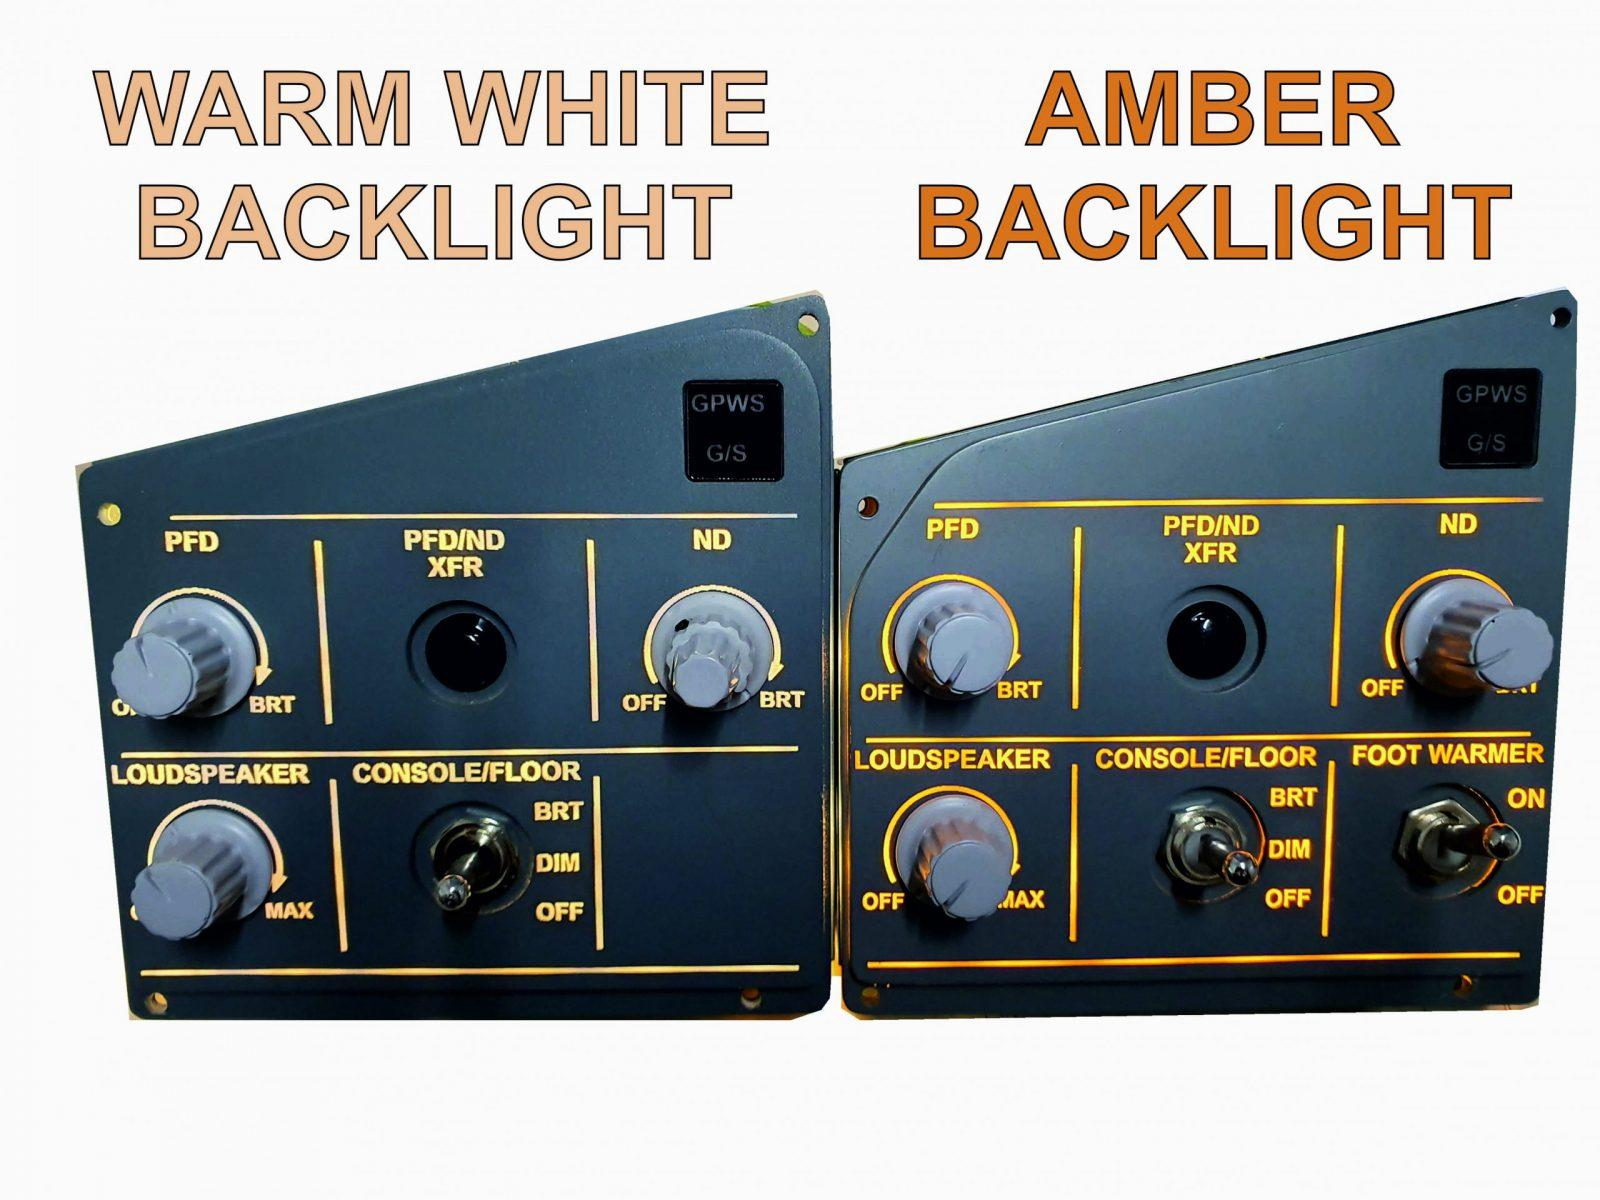 Backlight Variants